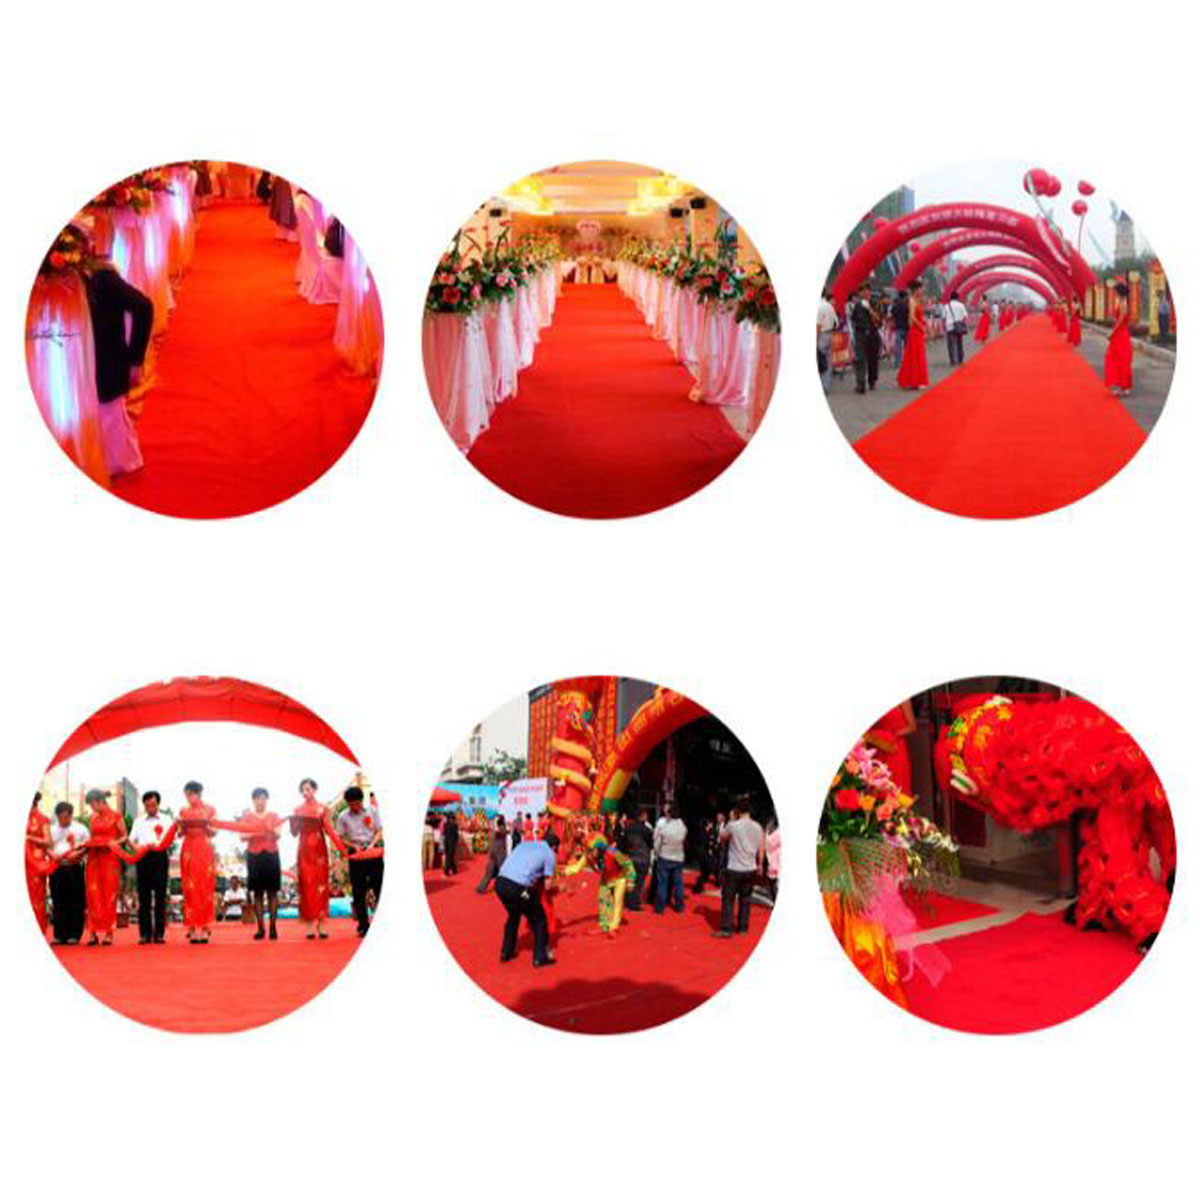 10m/15m VIP Red Carpet Runner Party Decoration Wedding Aisle Floor Disposable Entrance Scene Carpet